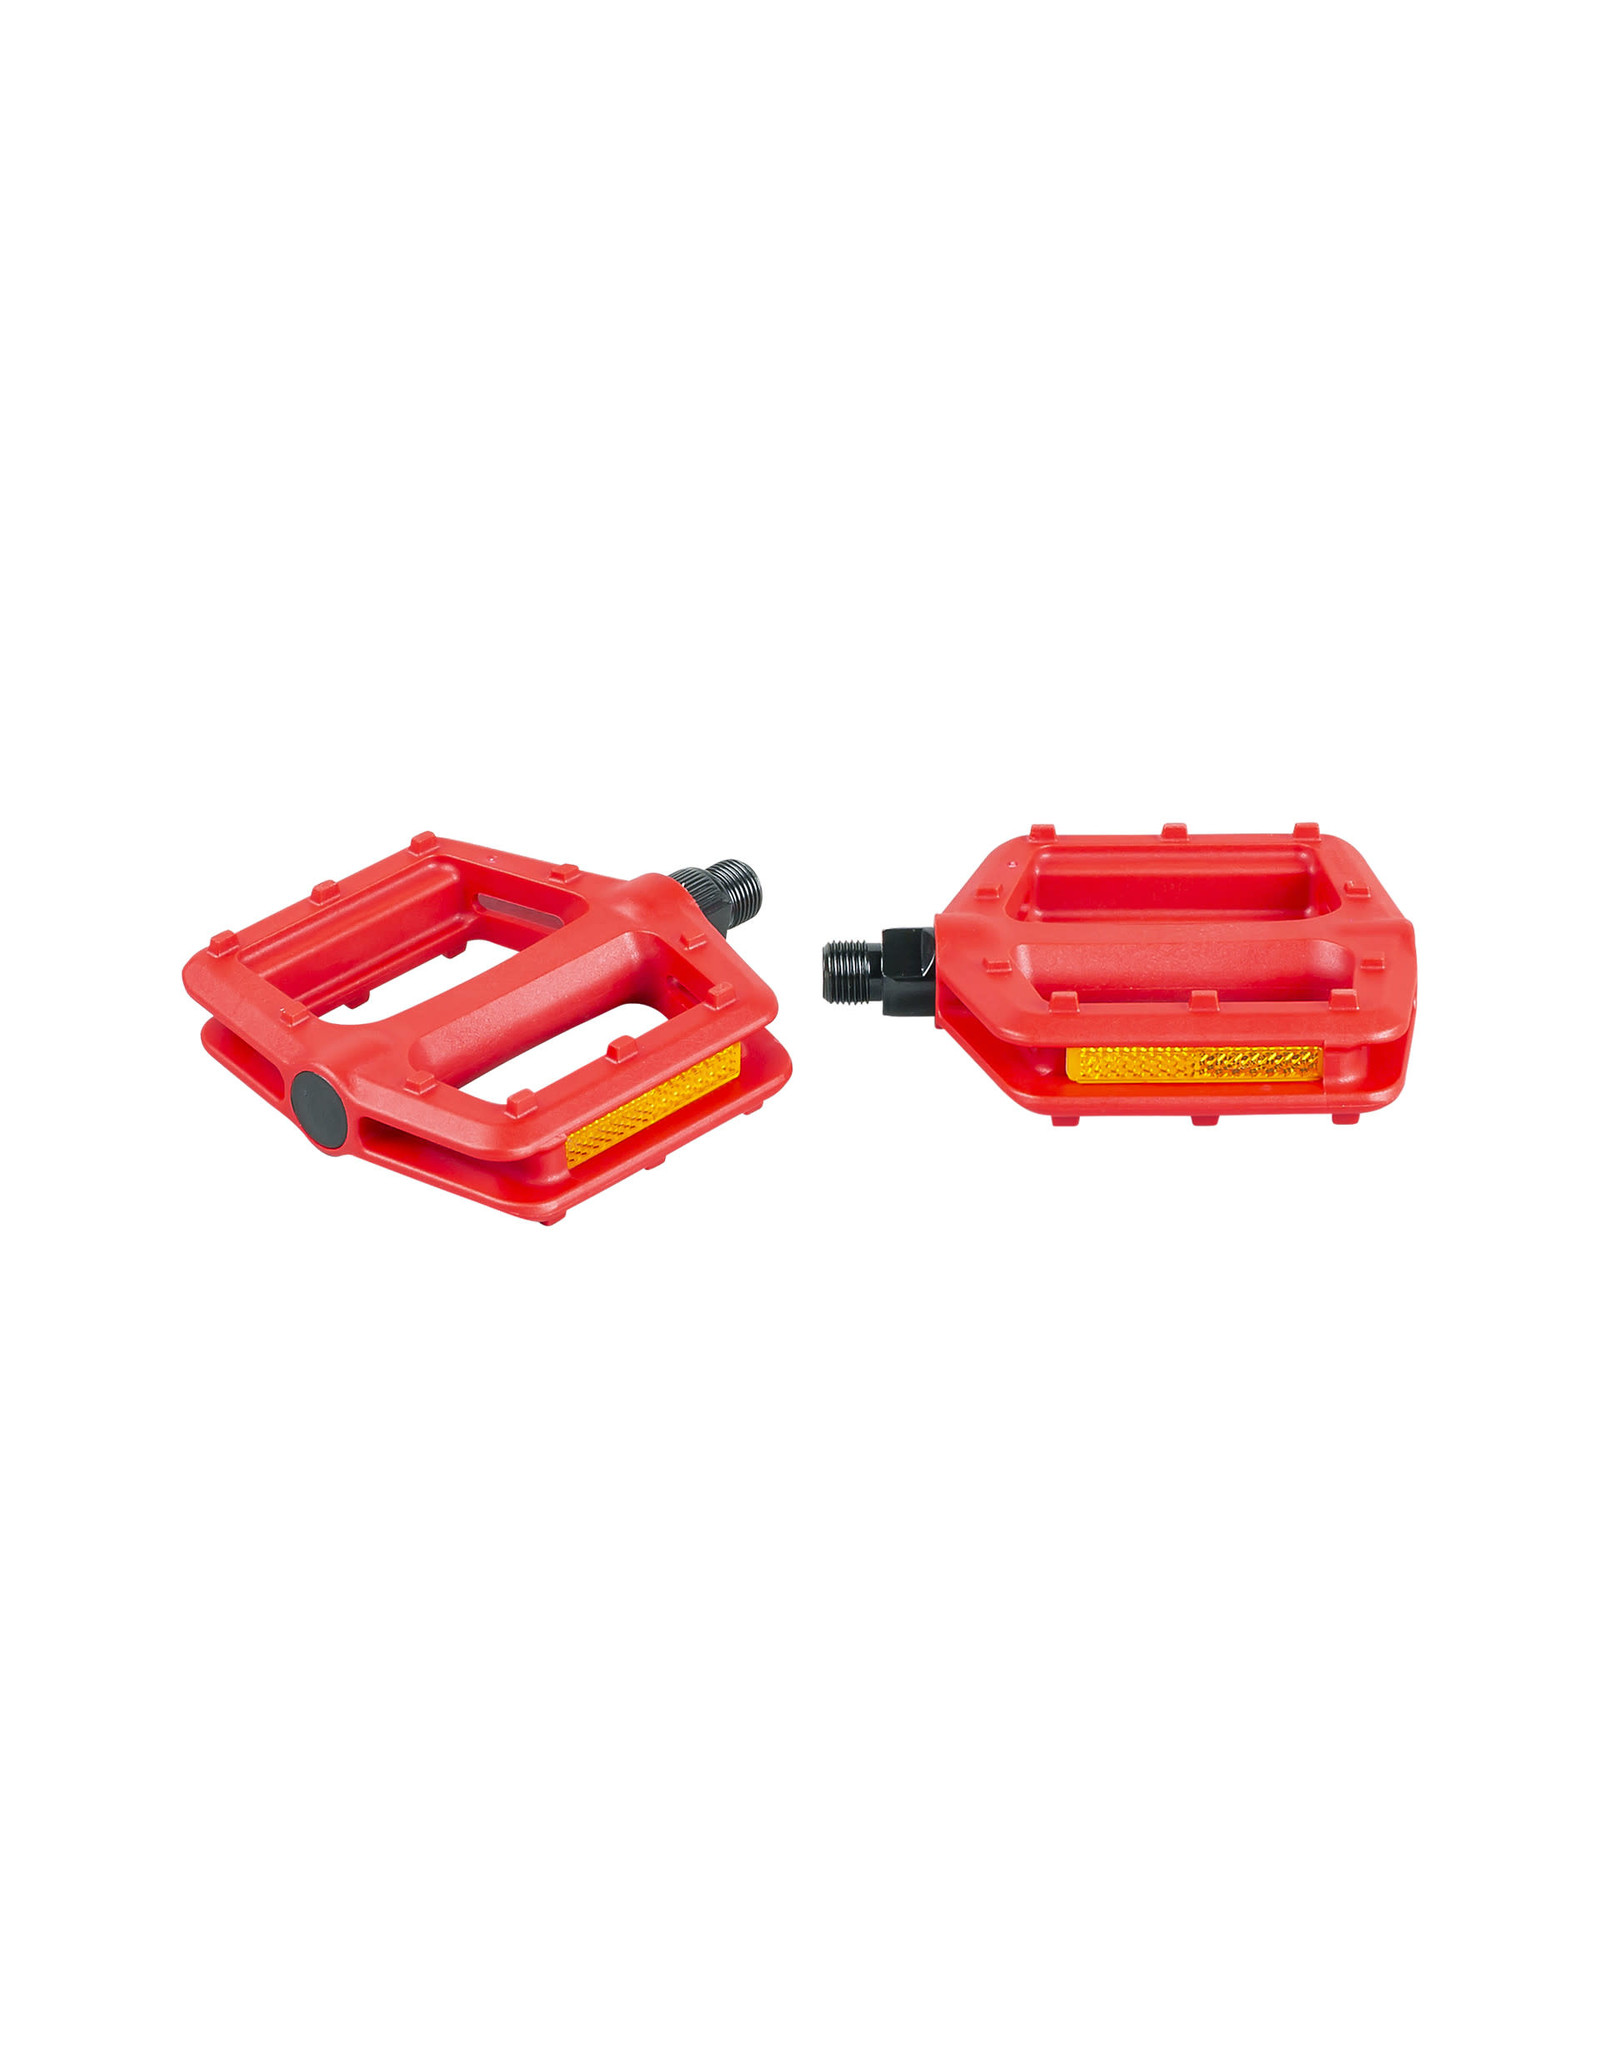 VP Components Pedal Vp Grind 916 Inch Red Pair